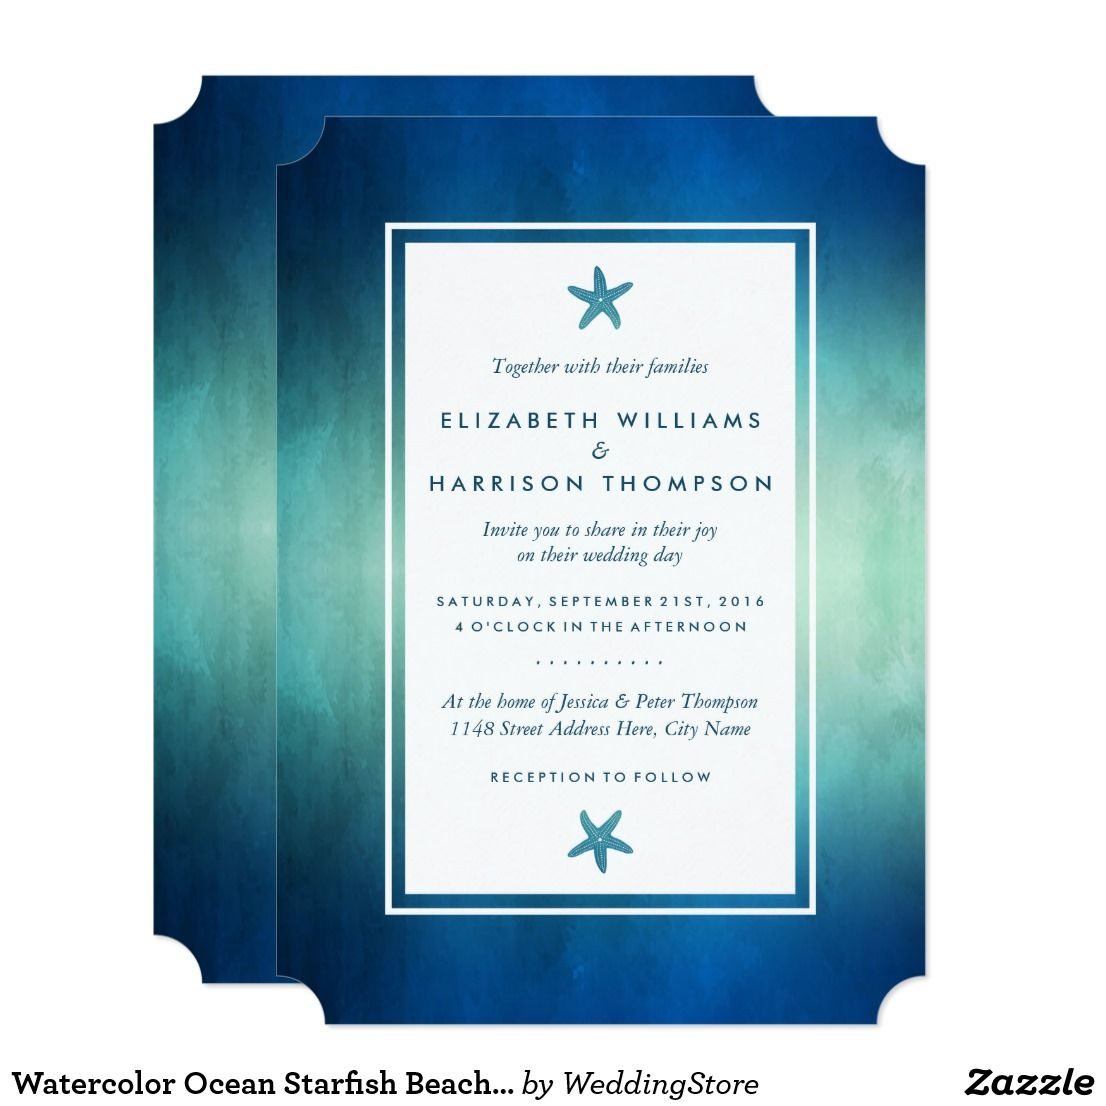 Watercolor Ocean Starfish Beach Wedding Invitation | Watercolor ...